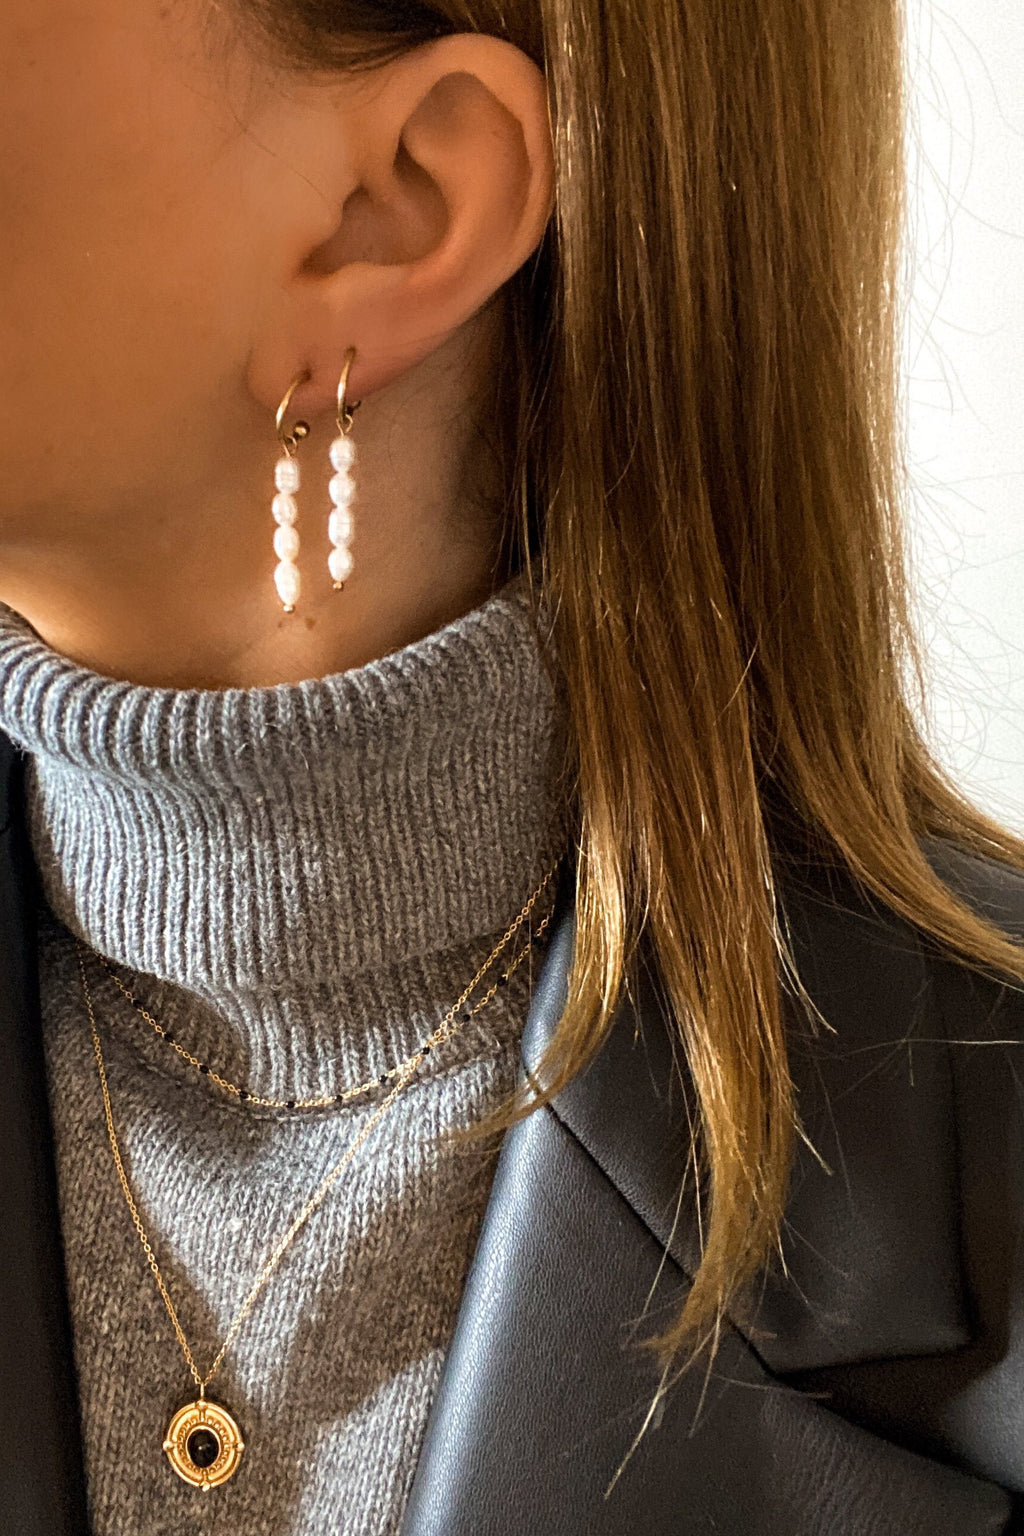 Brenda Hoop Earrings - Boutique Minimaliste